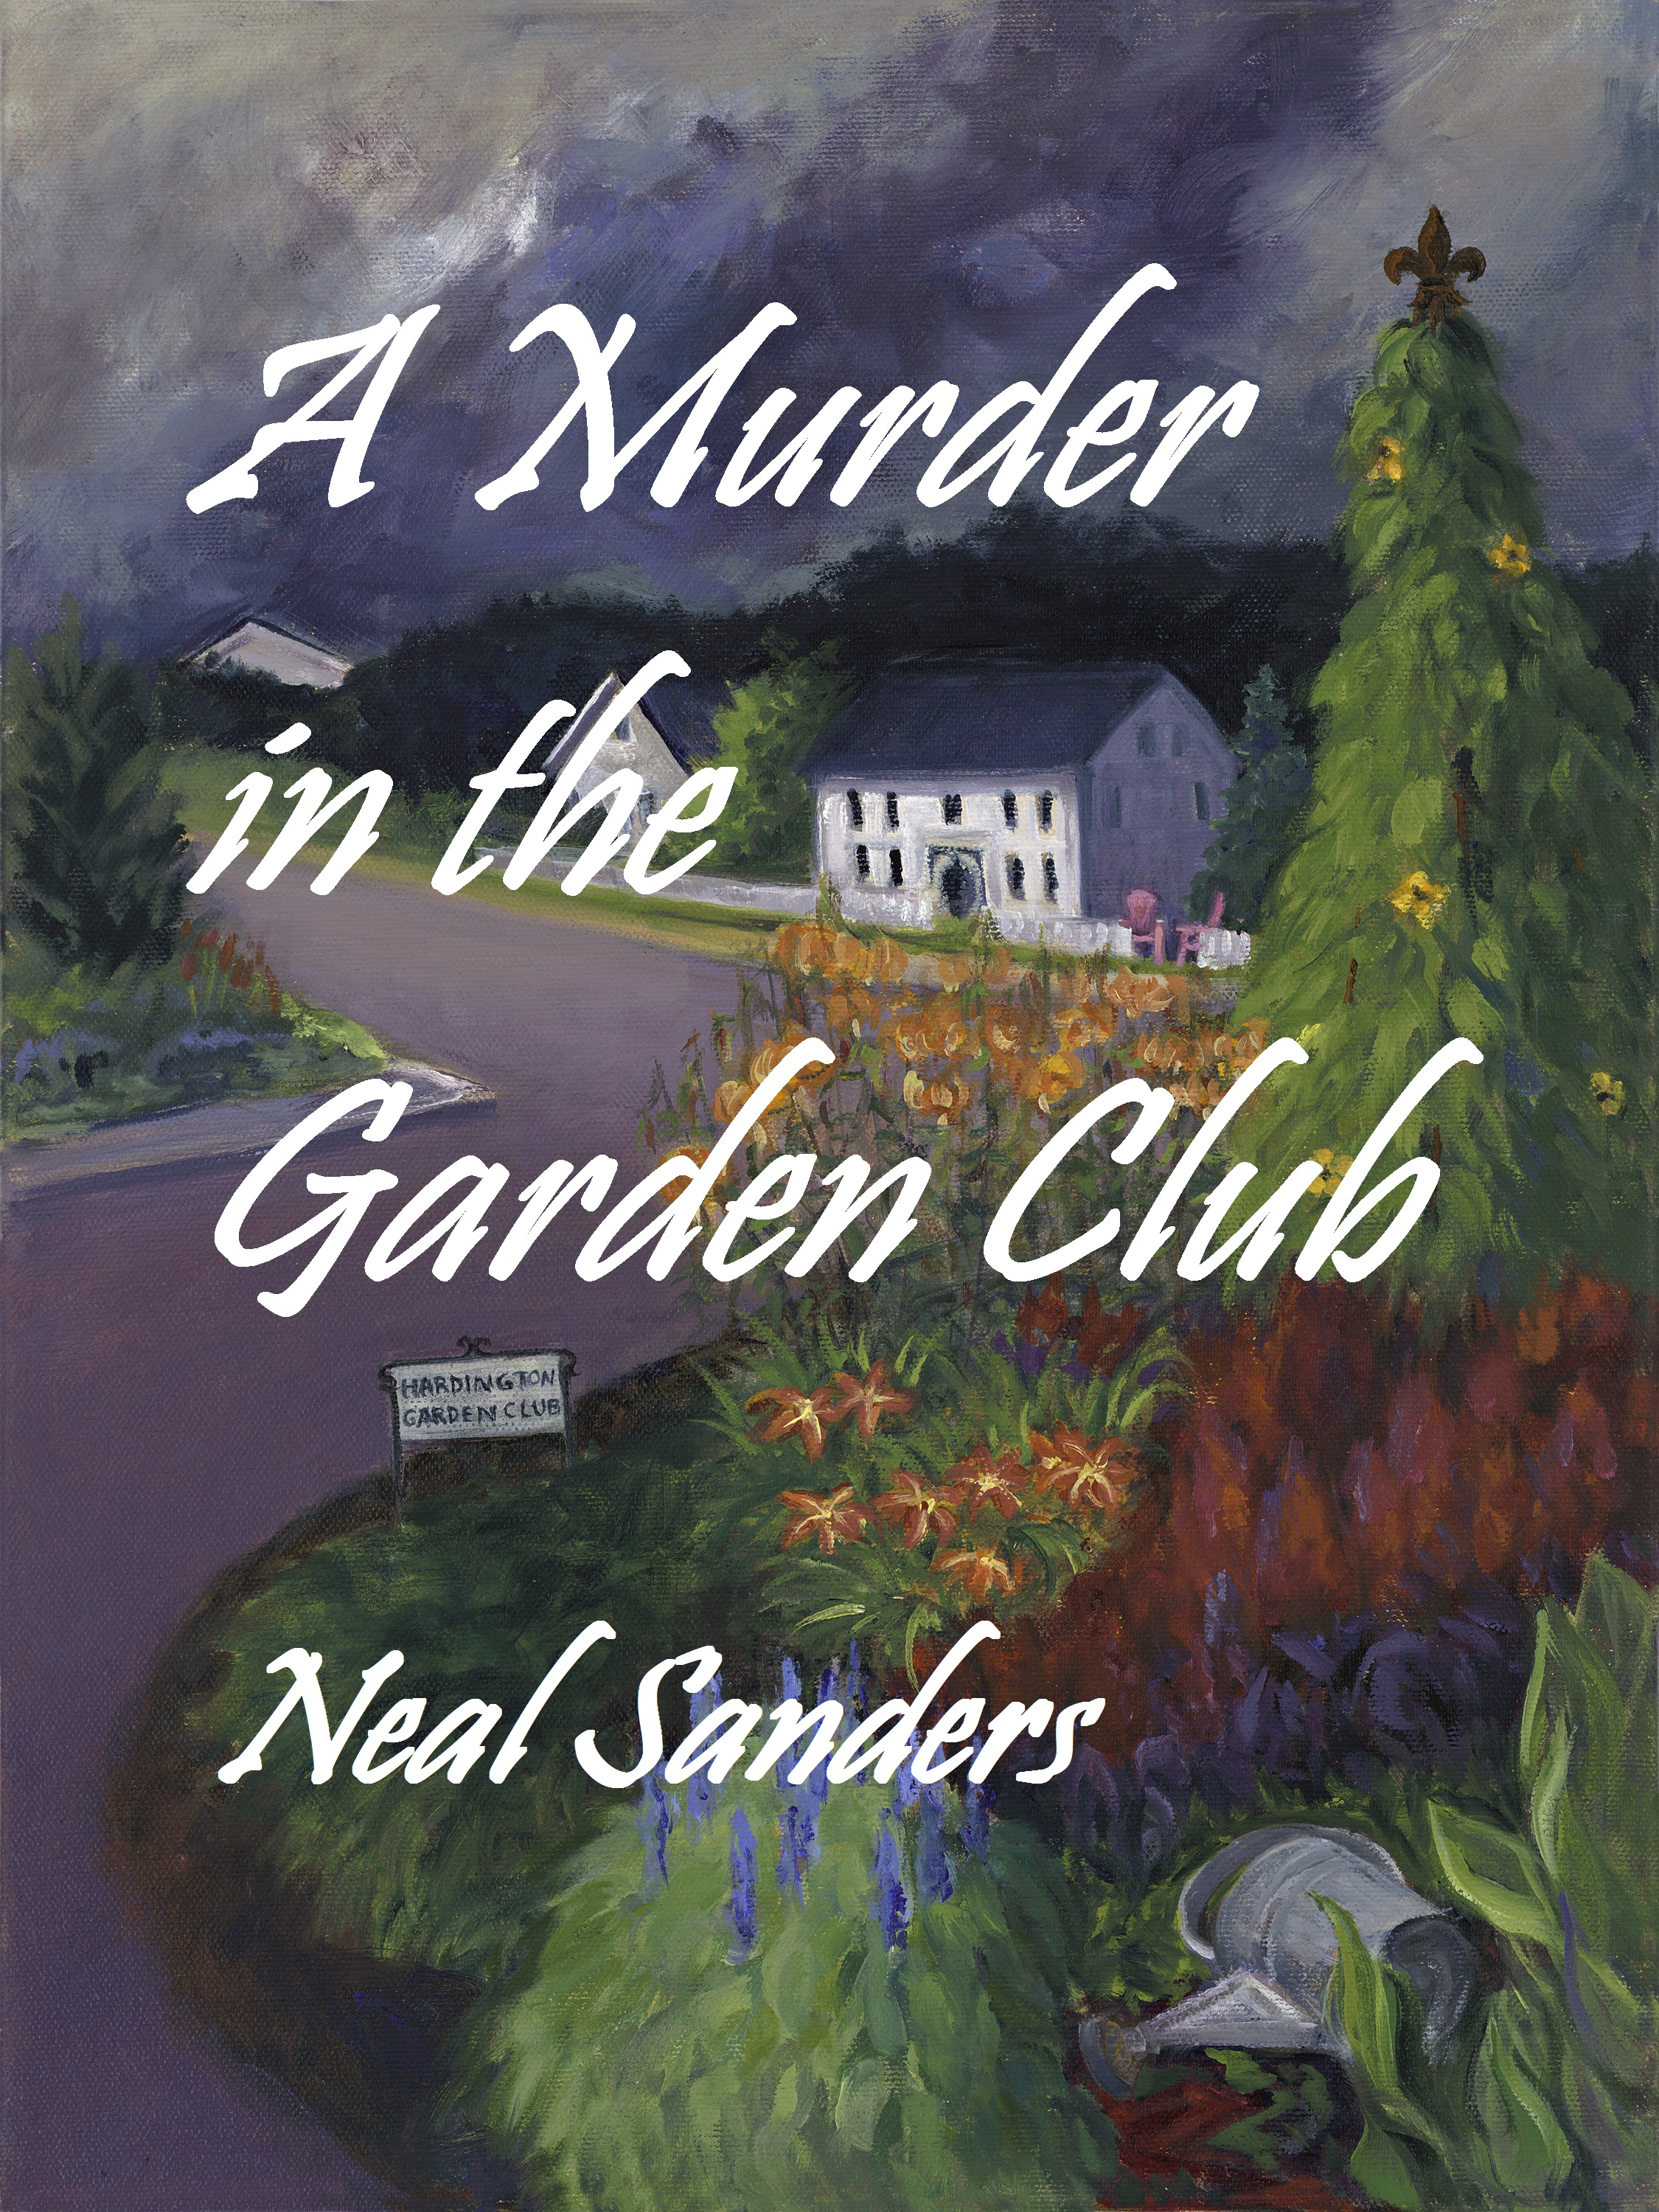 http://www.thehardingtonpress.com/wp-content/uploads/2012/04/A-Murder-in-the-Garden-Club-Cover-as-published.jpg